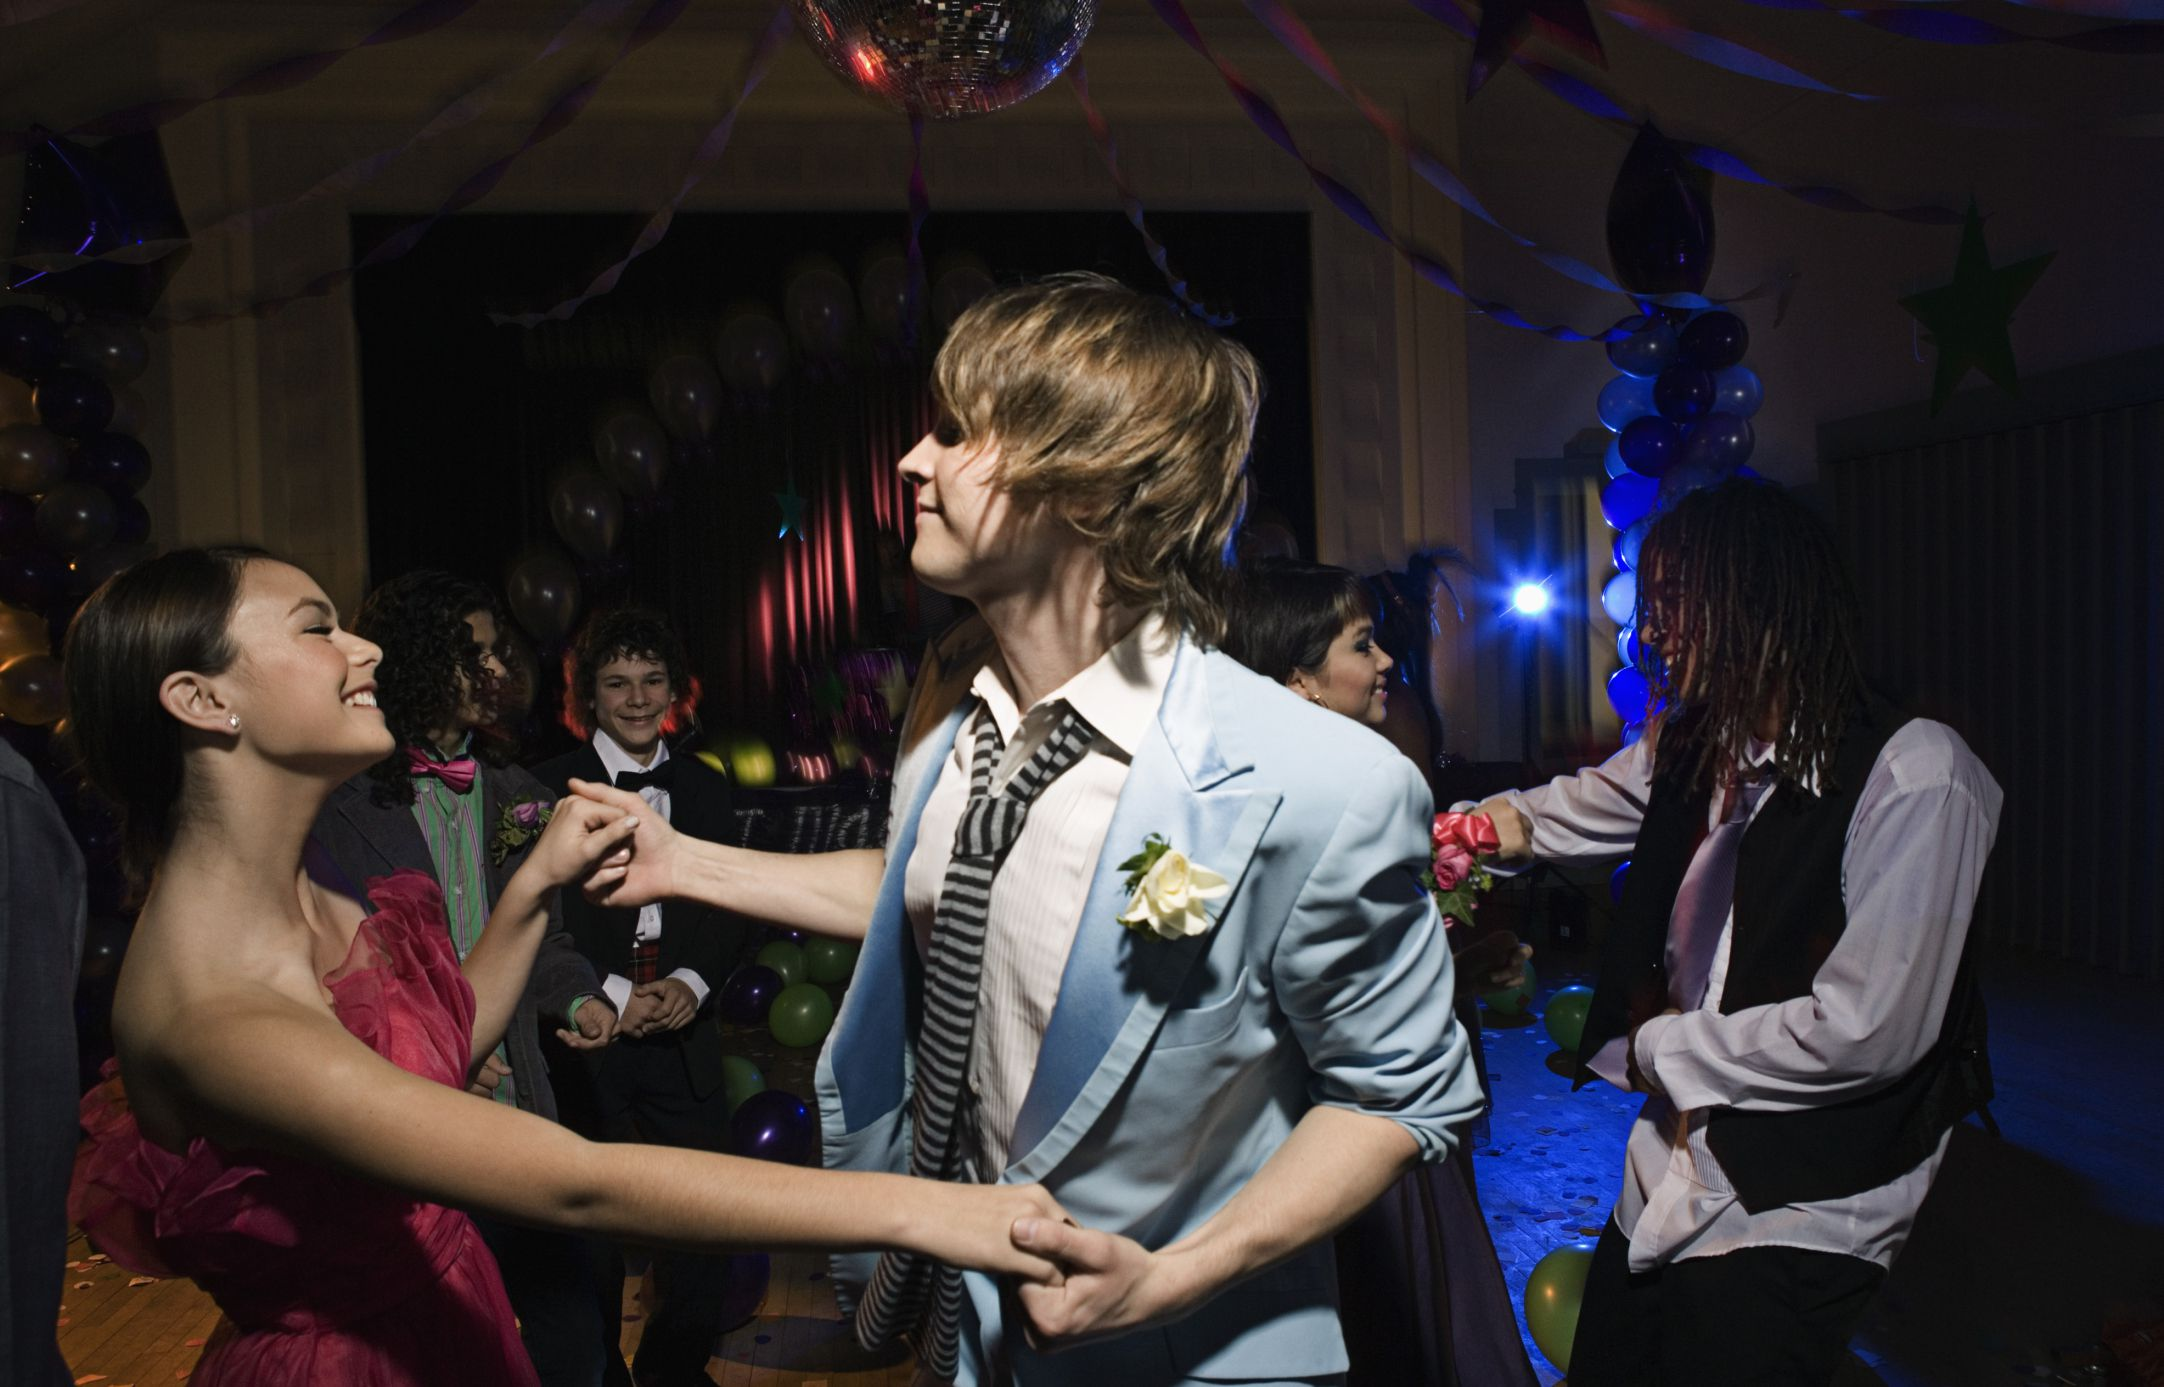 How To Go To Prom With Someone As Just Friends